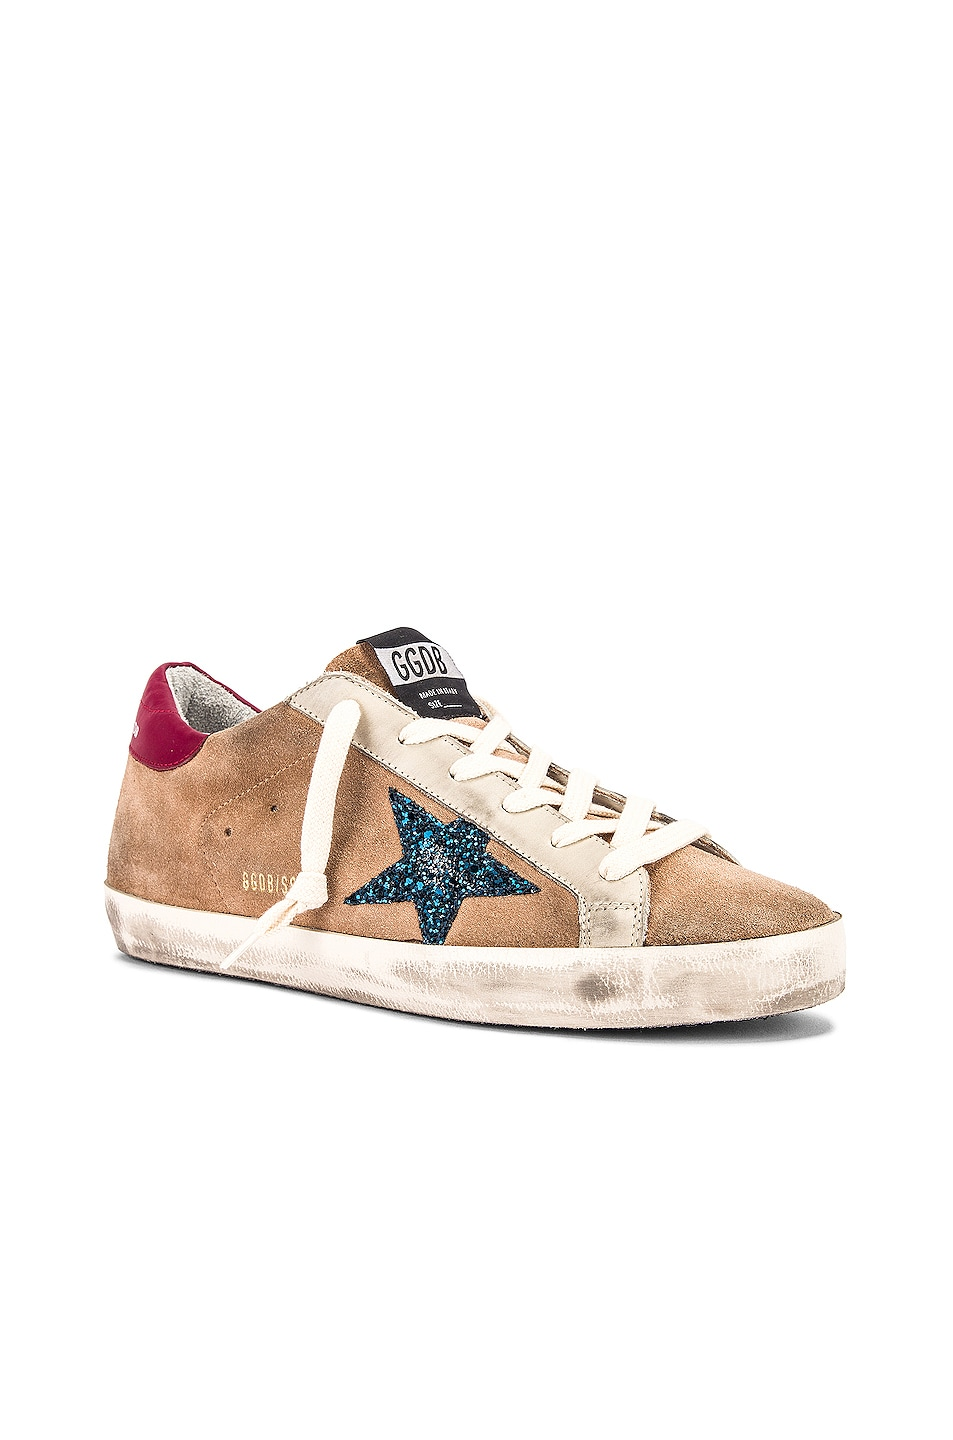 Image 2 of Golden Goose Superstar Sneaker in Desert Suede & Blue Glitter